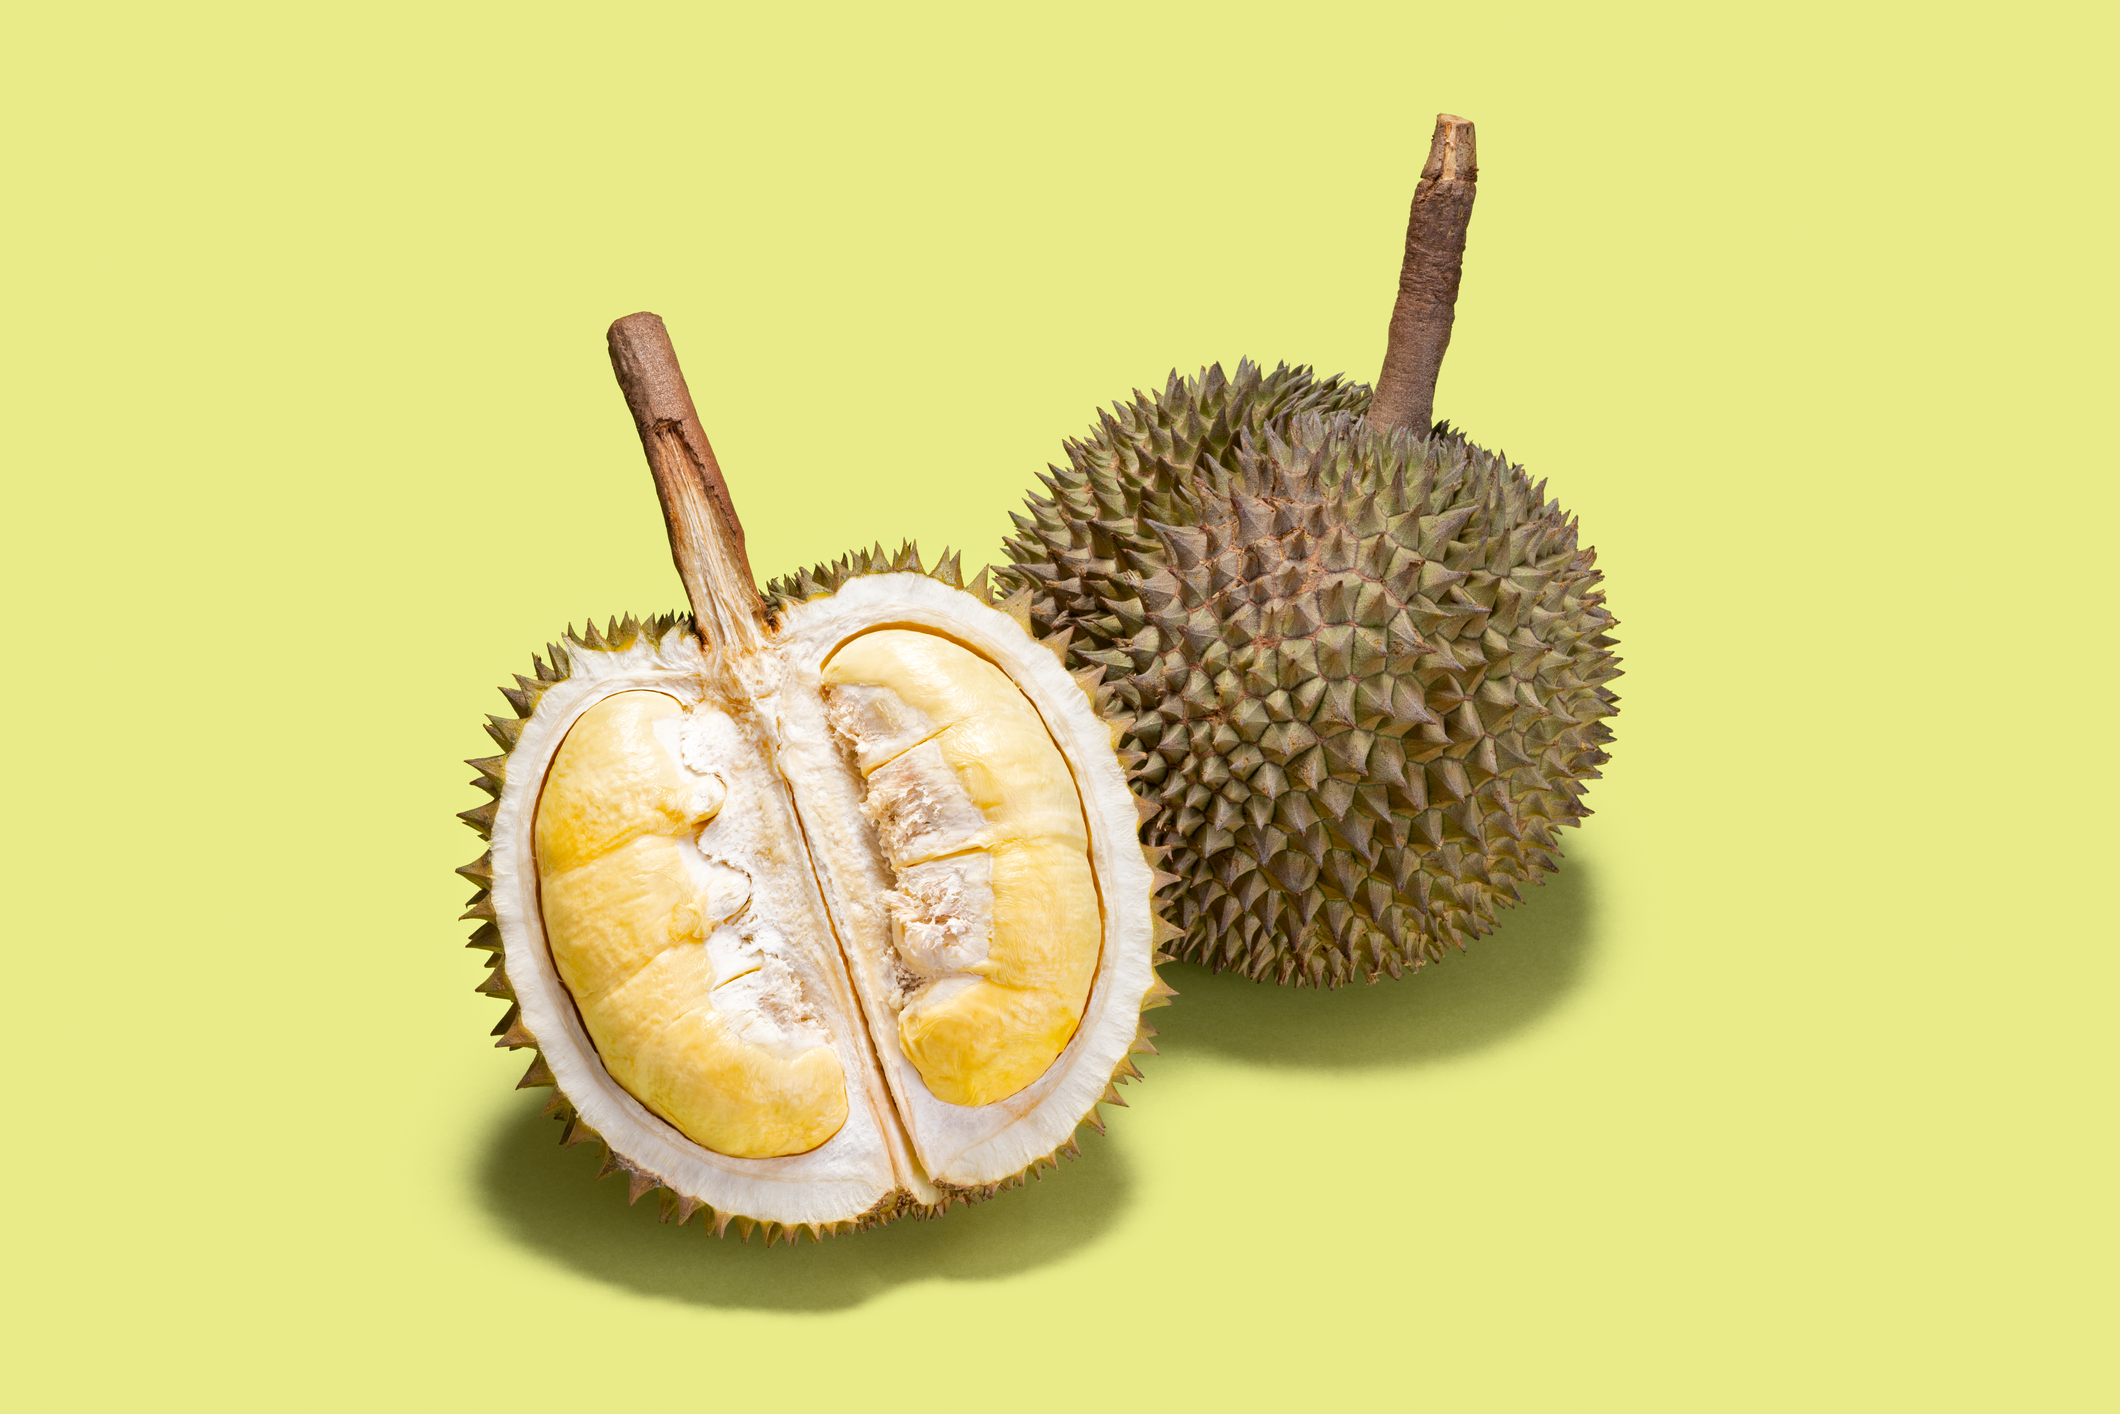 8. Durian